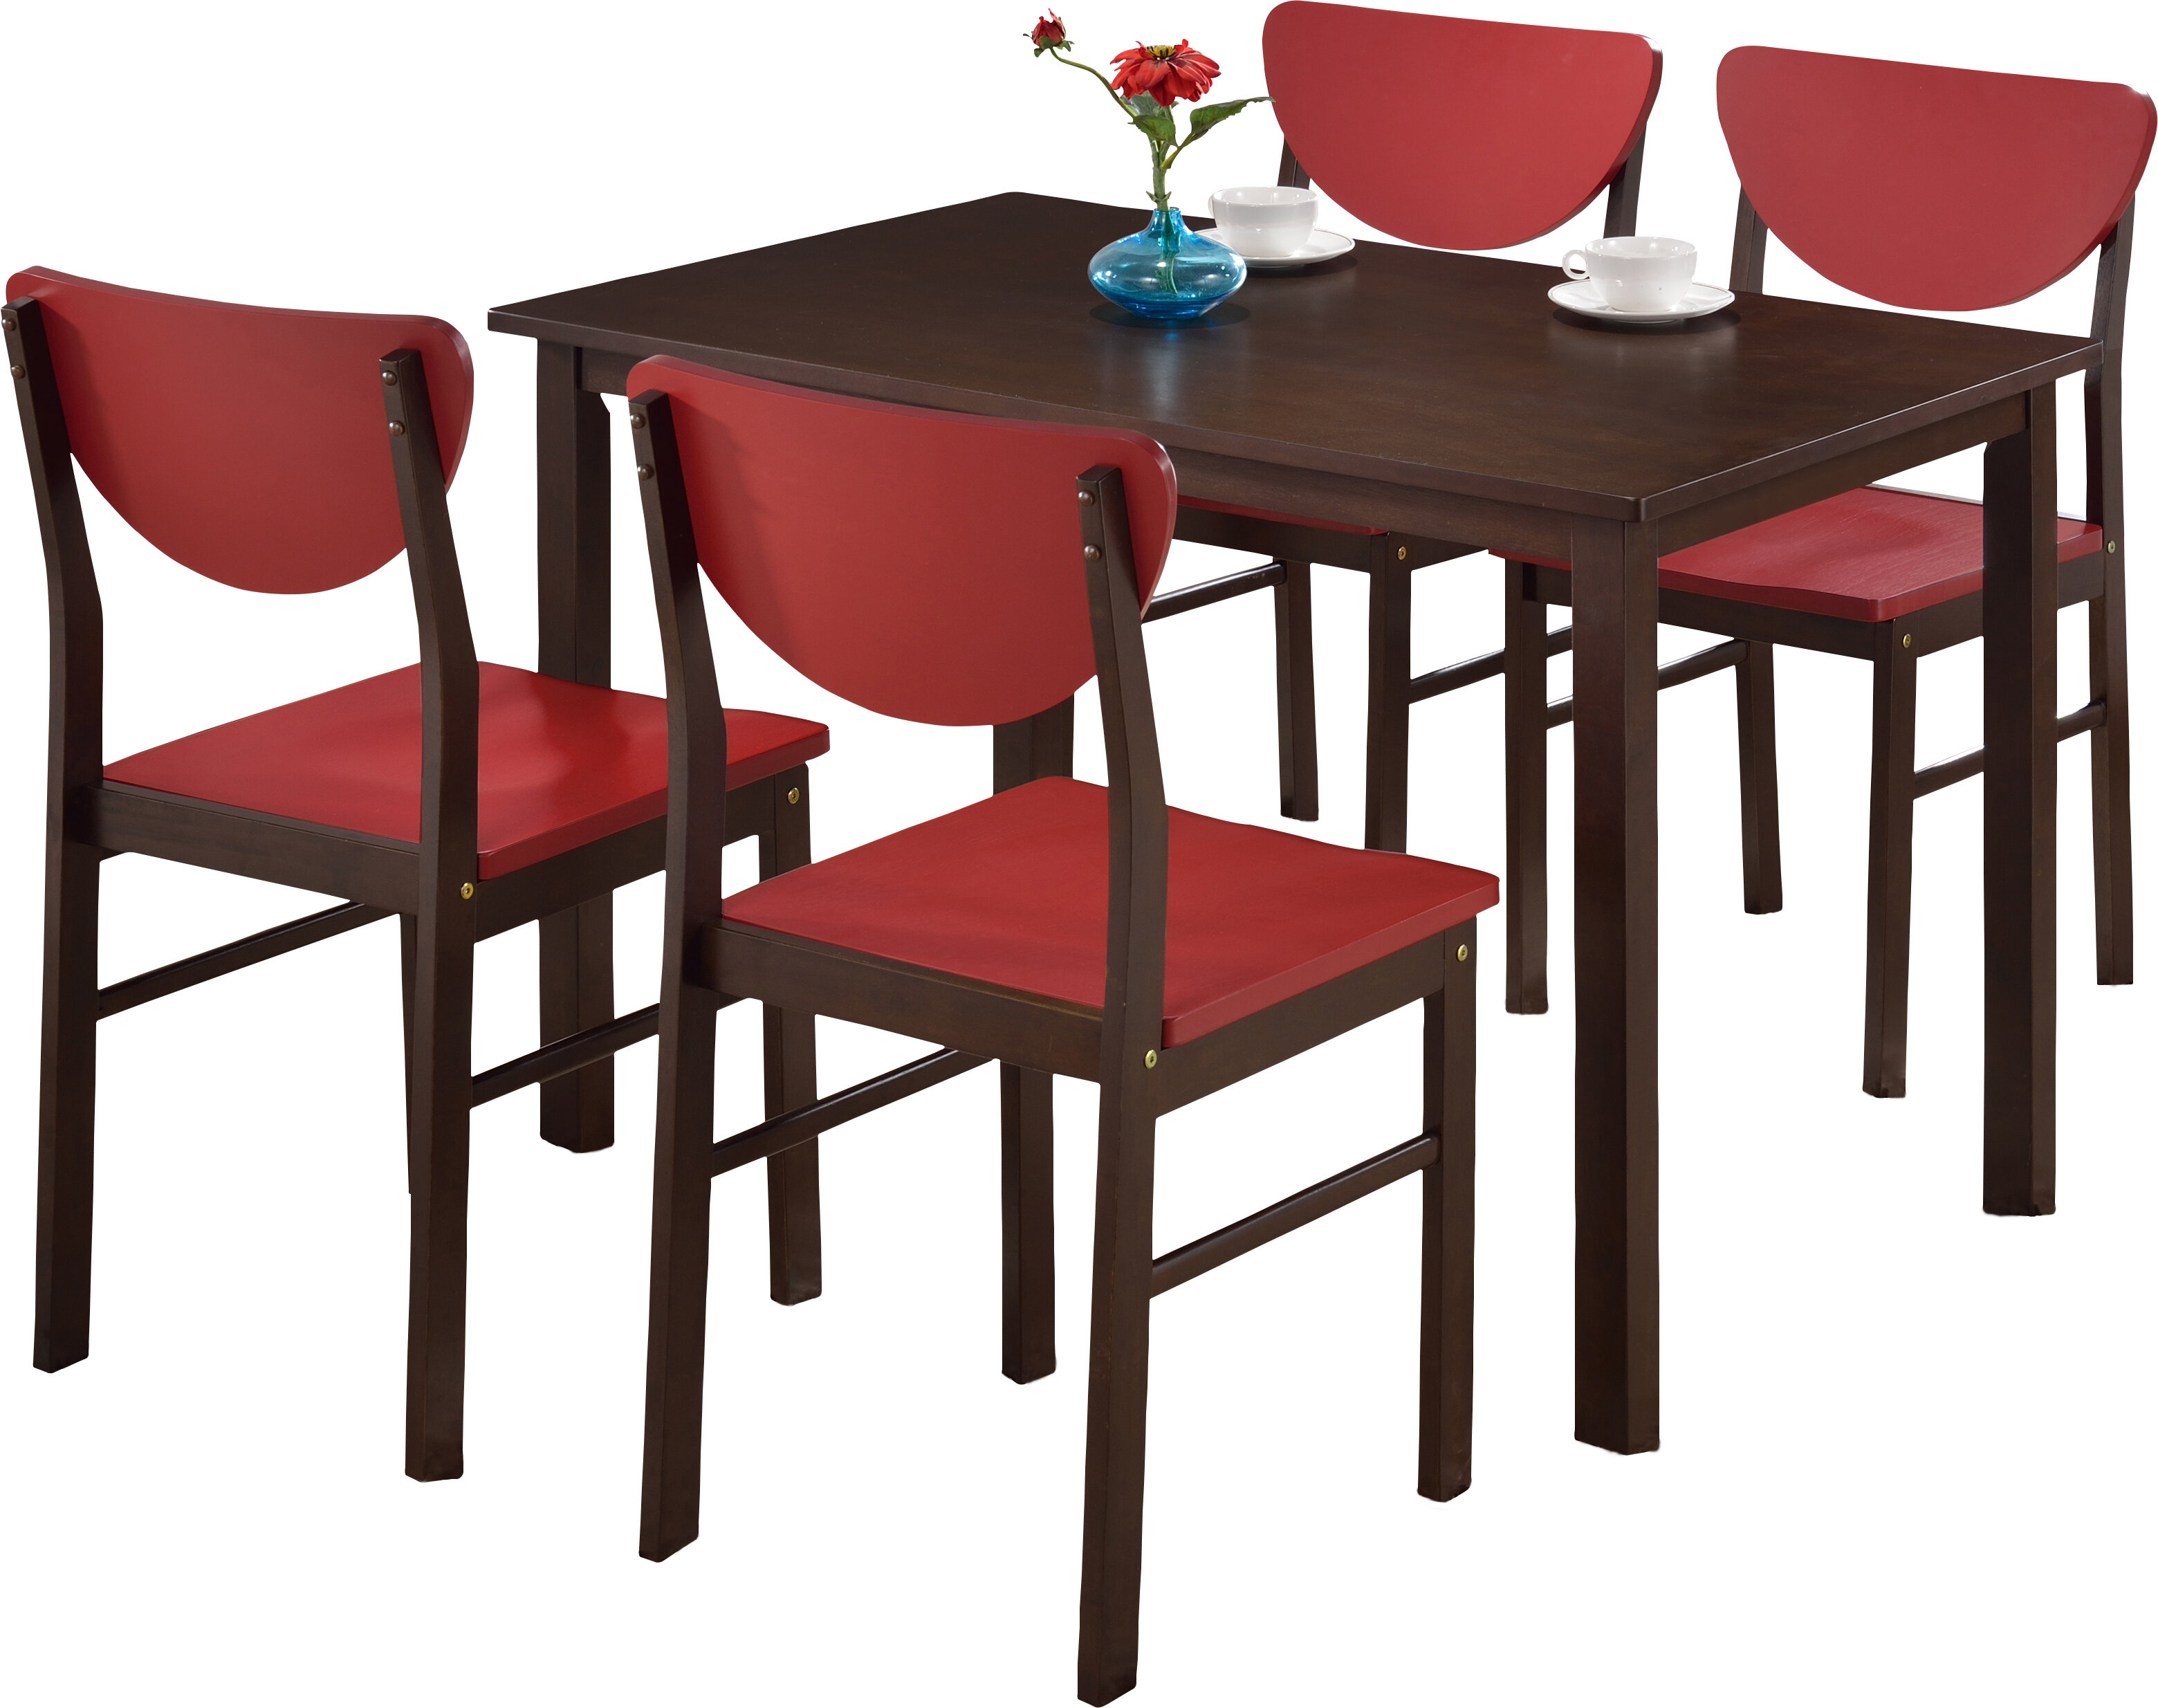 Alesha 5 Piece Dining Set Within Most Up To Date Tejeda 5 Piece Dining Sets (View 19 of 20)